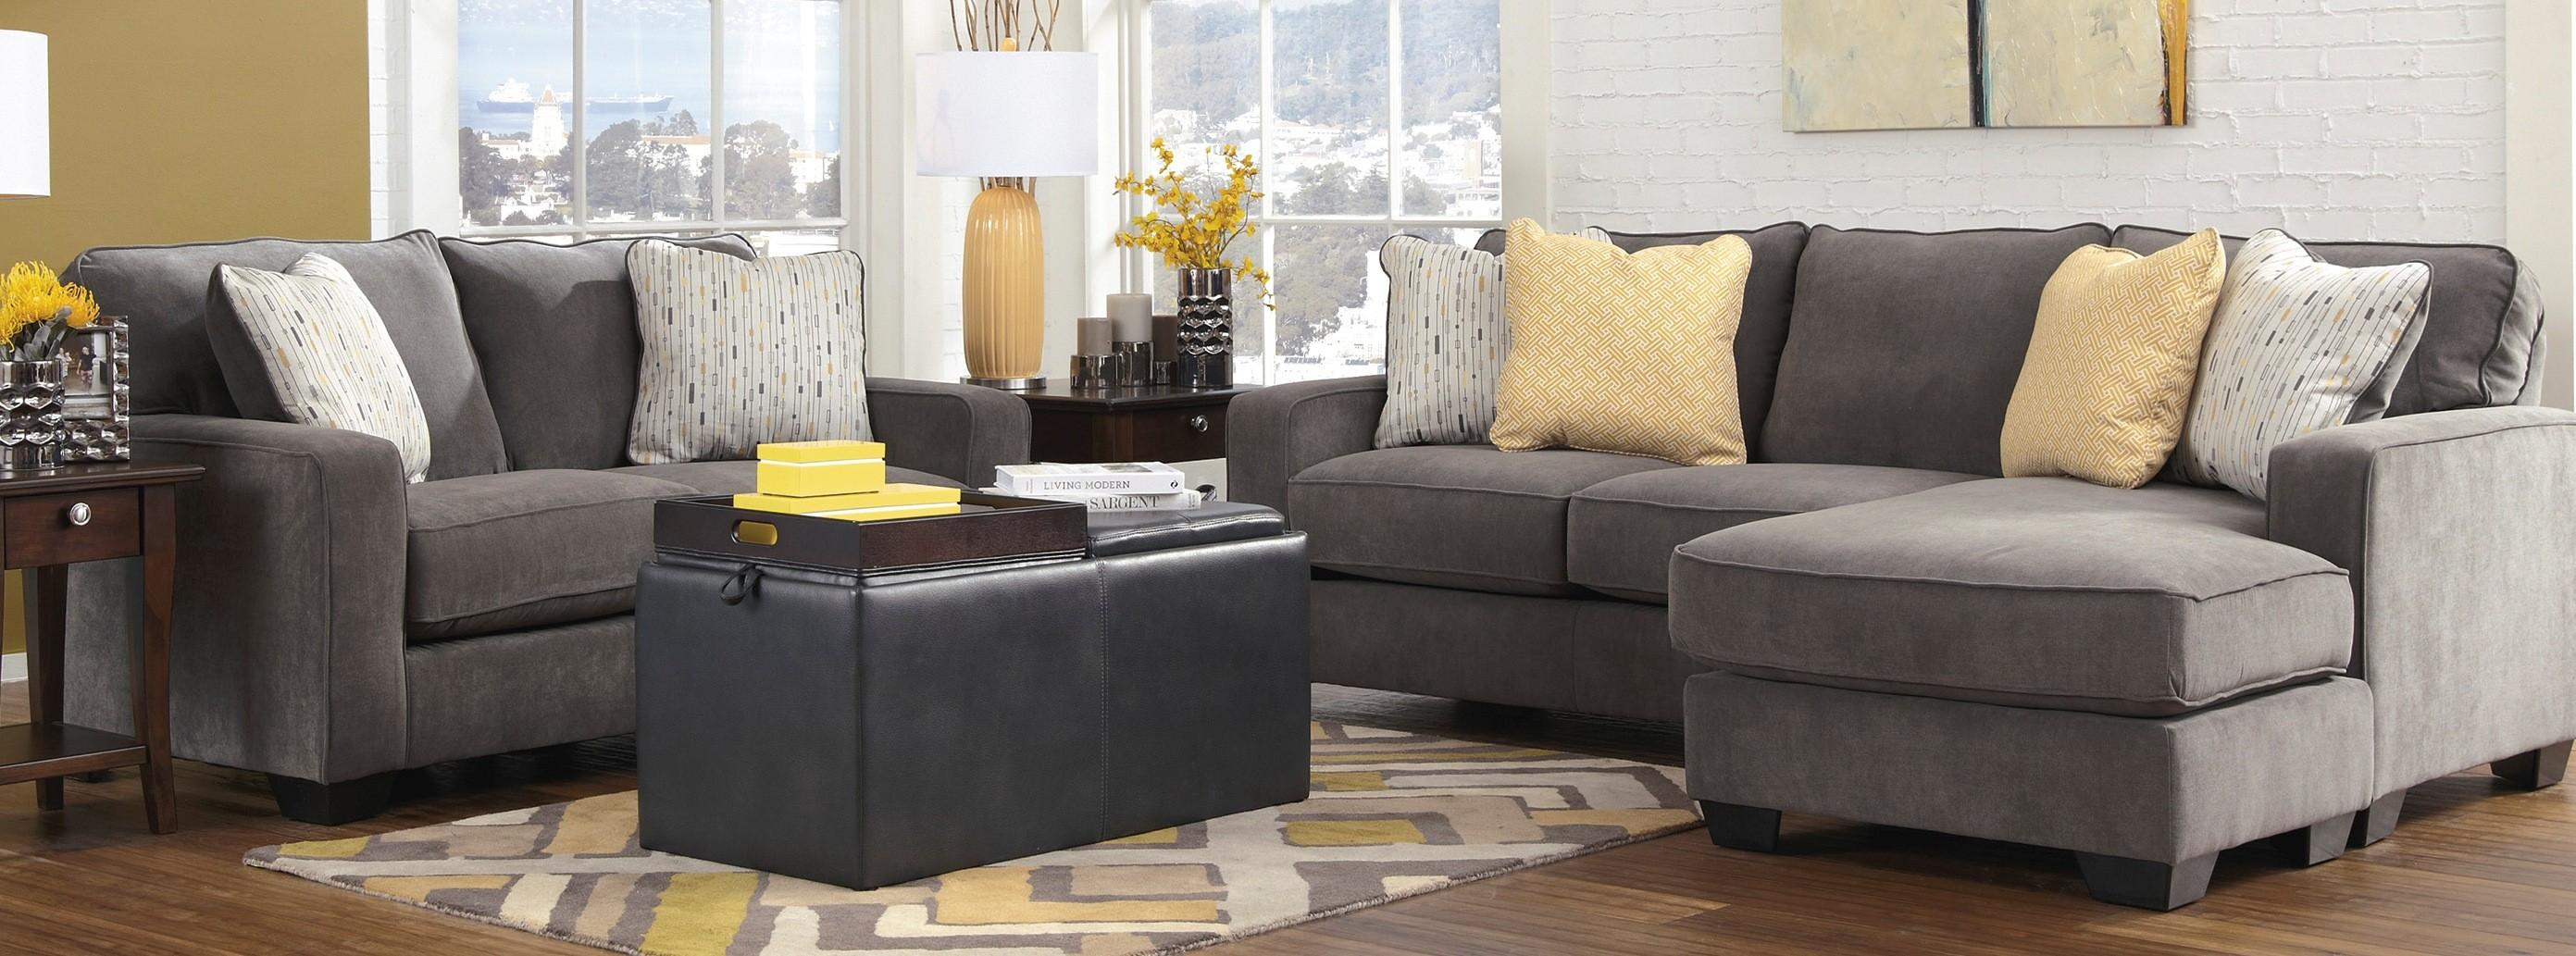 Modern 45 Awesome Ashley Furniture Living Room Sets Sectionals with regard to Best of Ashley Living Room Sets